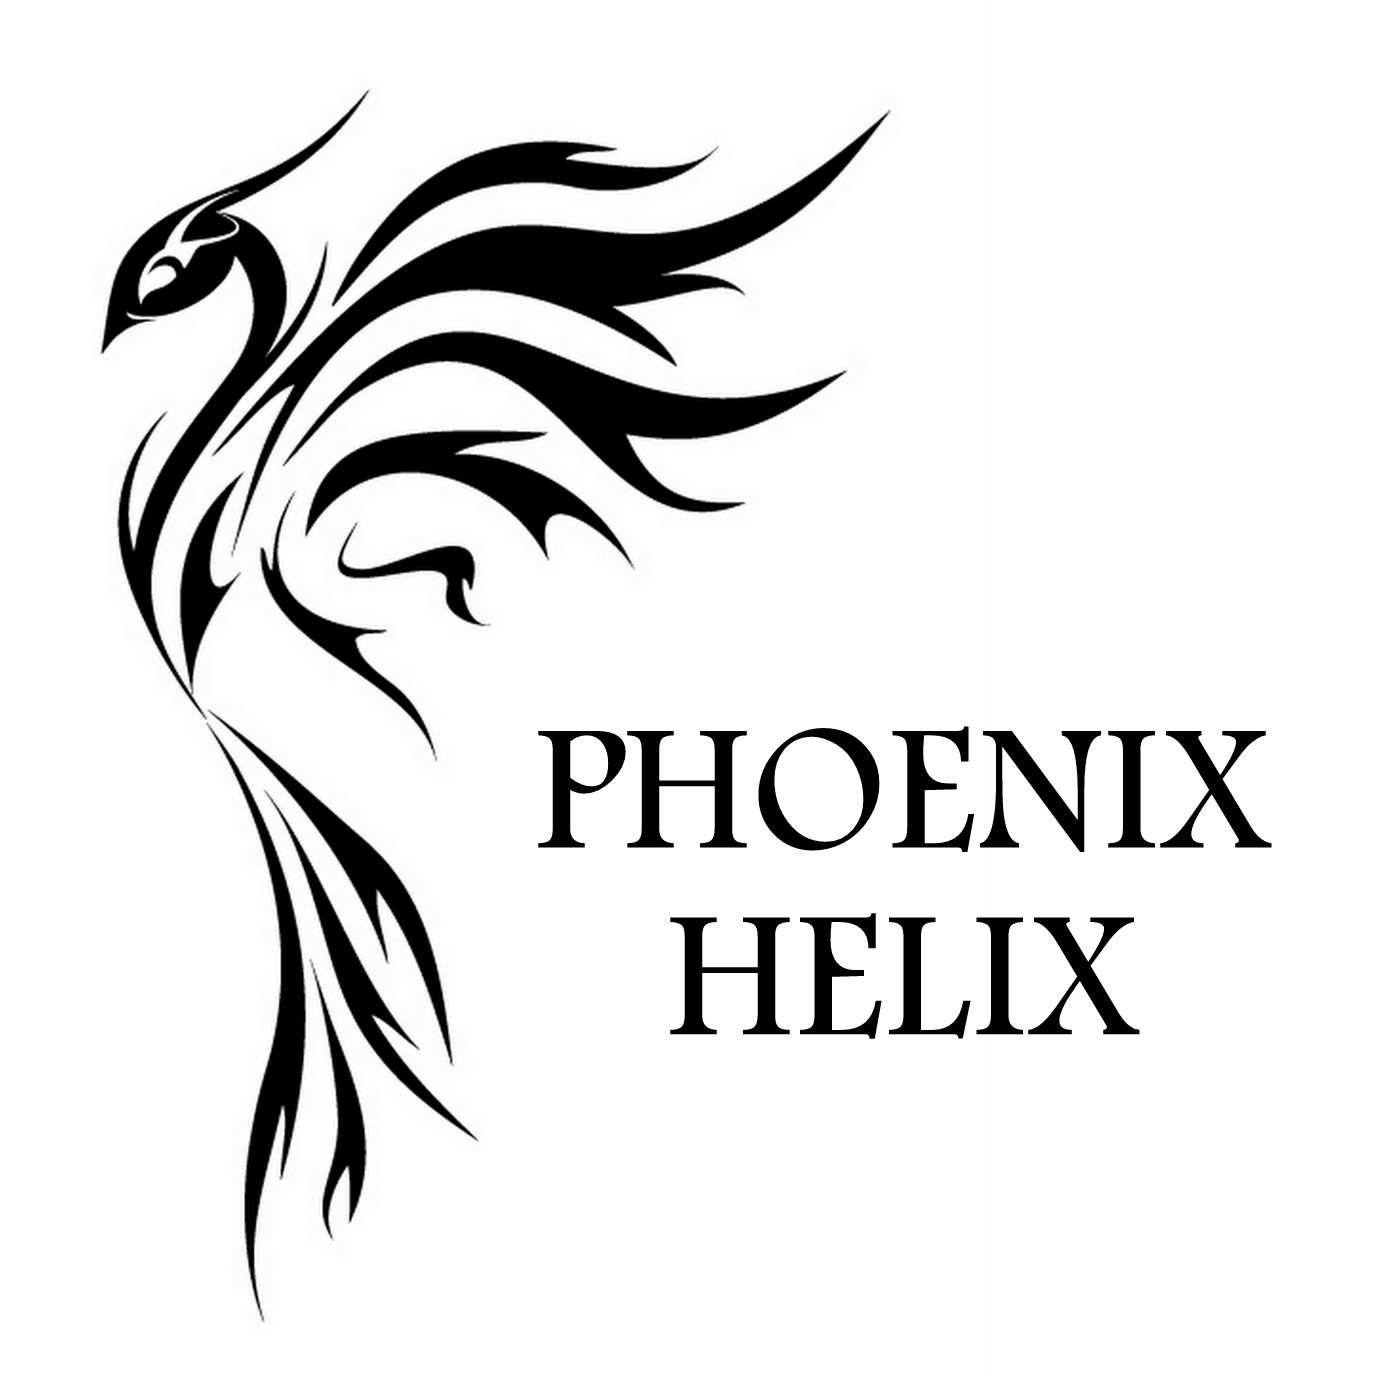 Phoenix Helix: Reversing autoimmune disease through the paleo diet and lifestyle